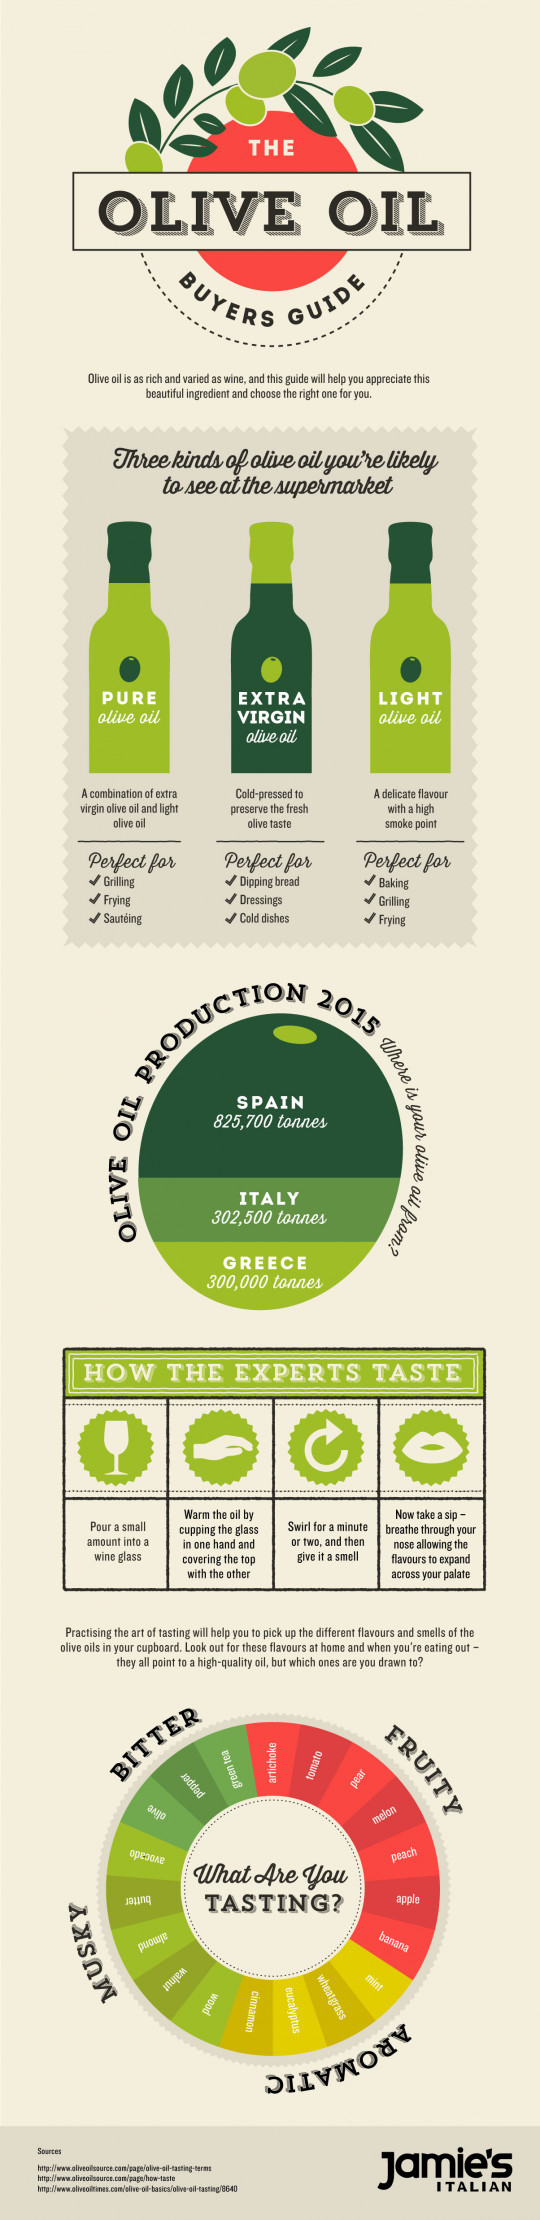 The Buyer's Guide to Olive Oil from Jamie's Italian